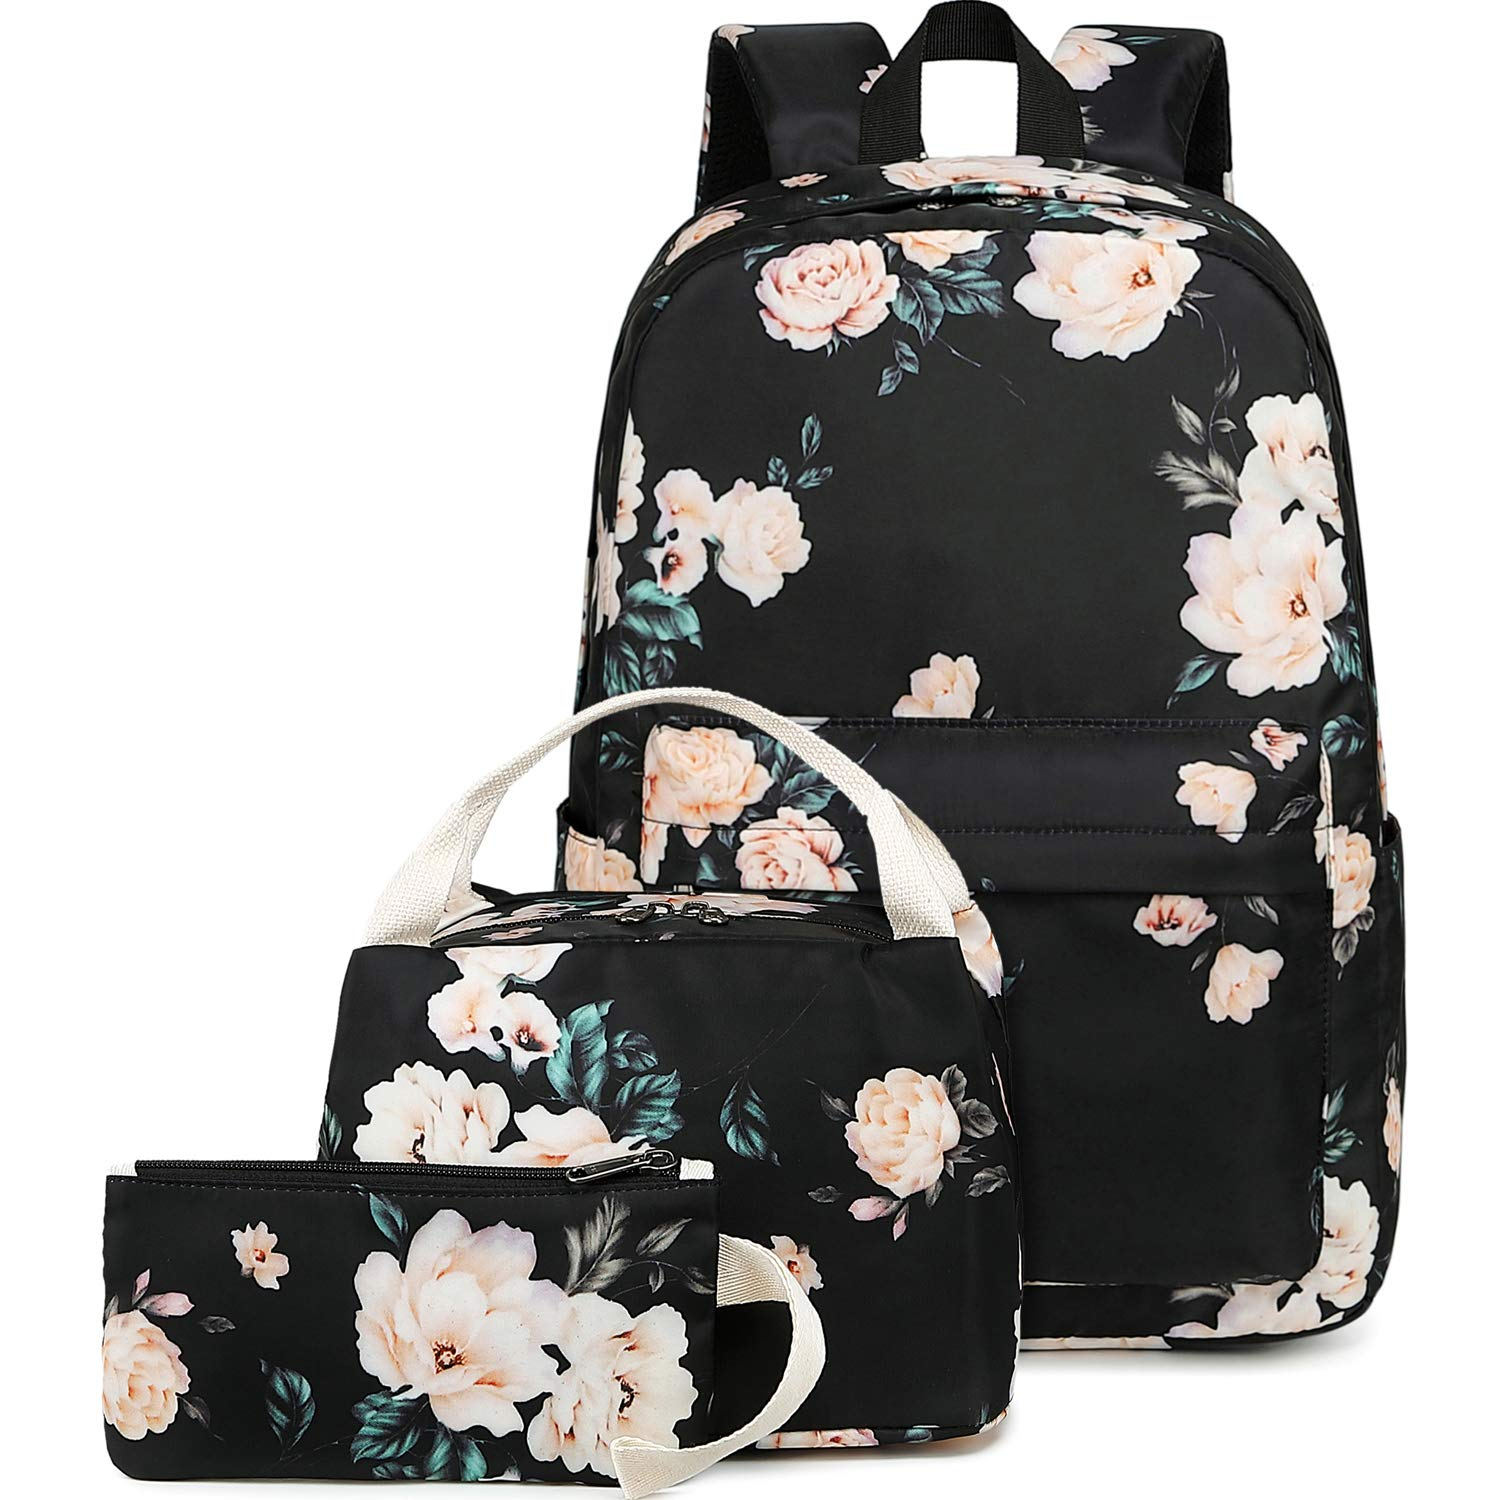 BLUBOON School Backpack Set Teen Girls Bookbags 15 inches Laptop Backpack Kids Lunch Tote Bag Clutch Purse (E0066 Black) by BLUBOON